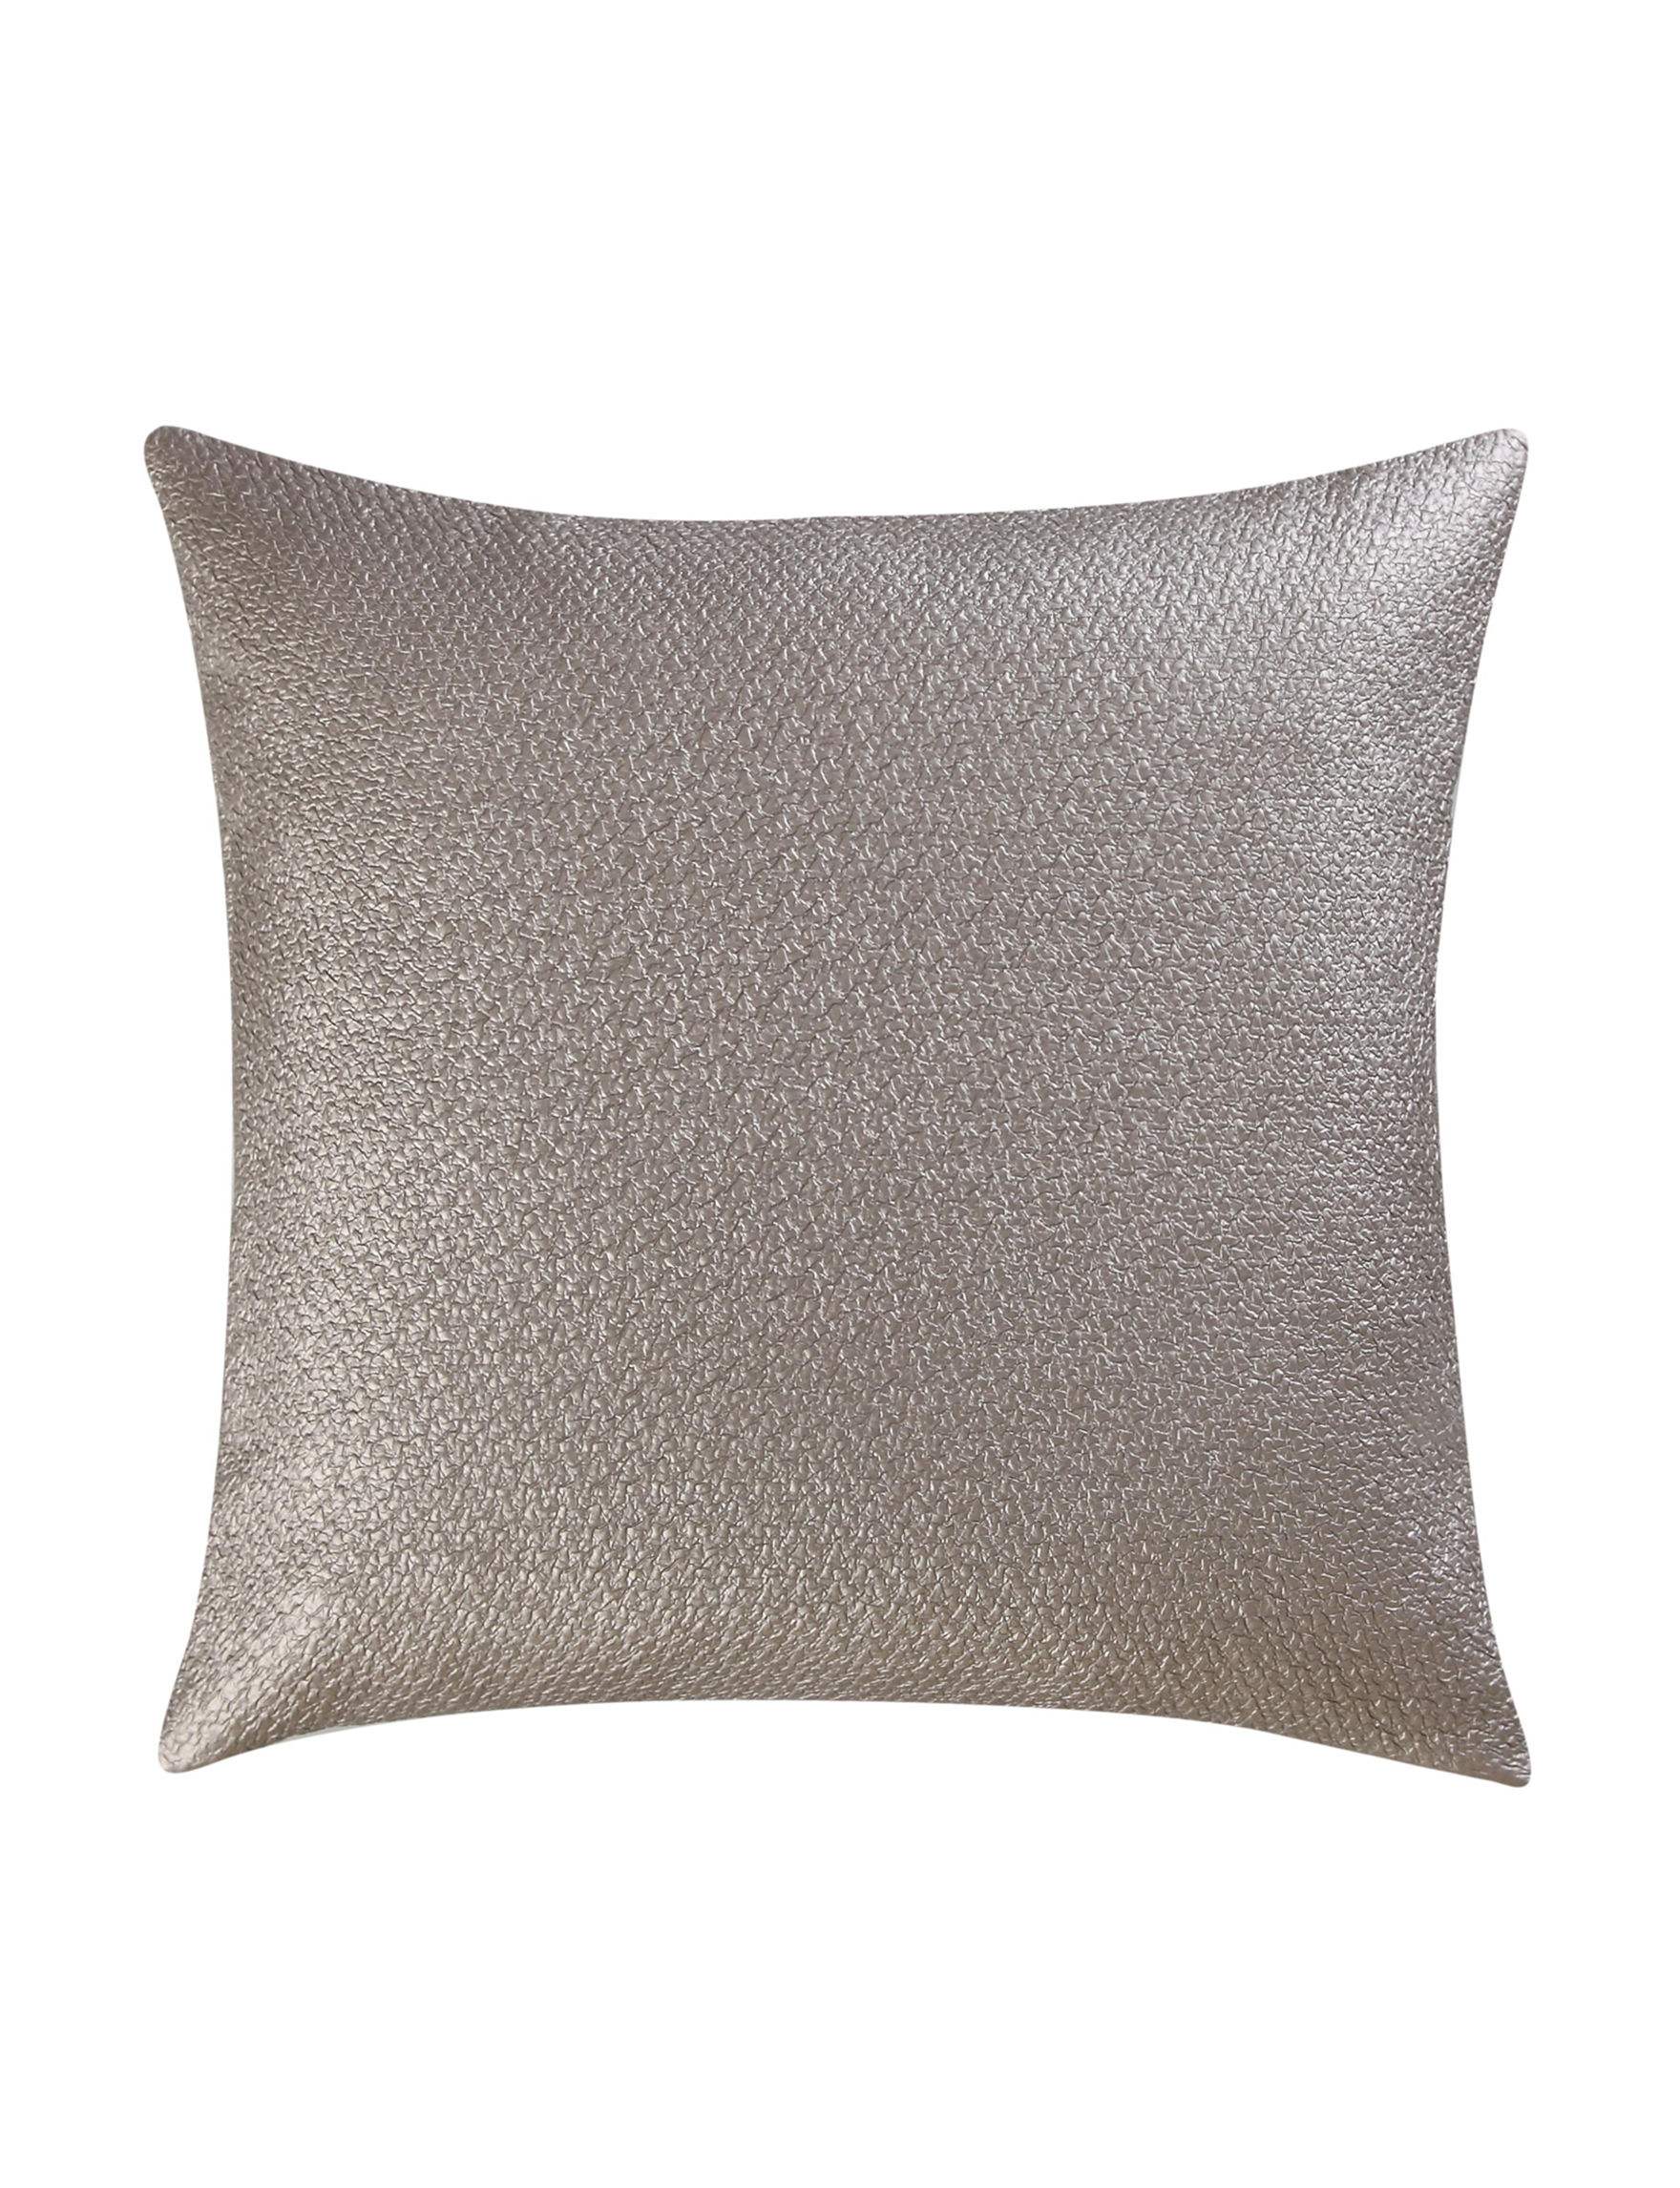 Vince Camuto Taupe Decorative Pillows